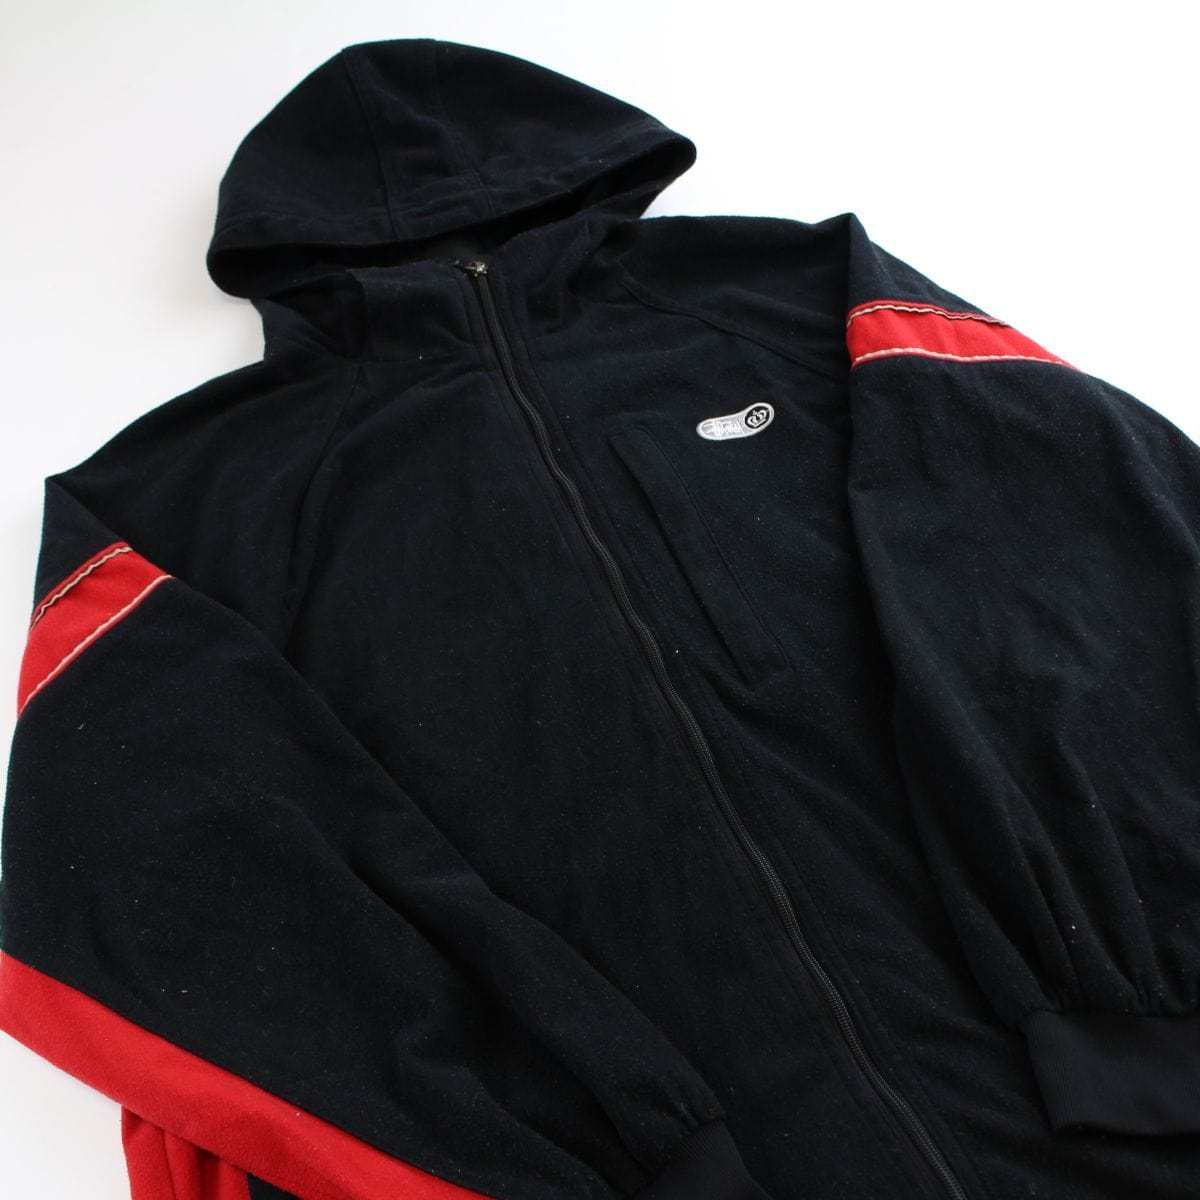 stussy fleece track jacket - SaruGeneral